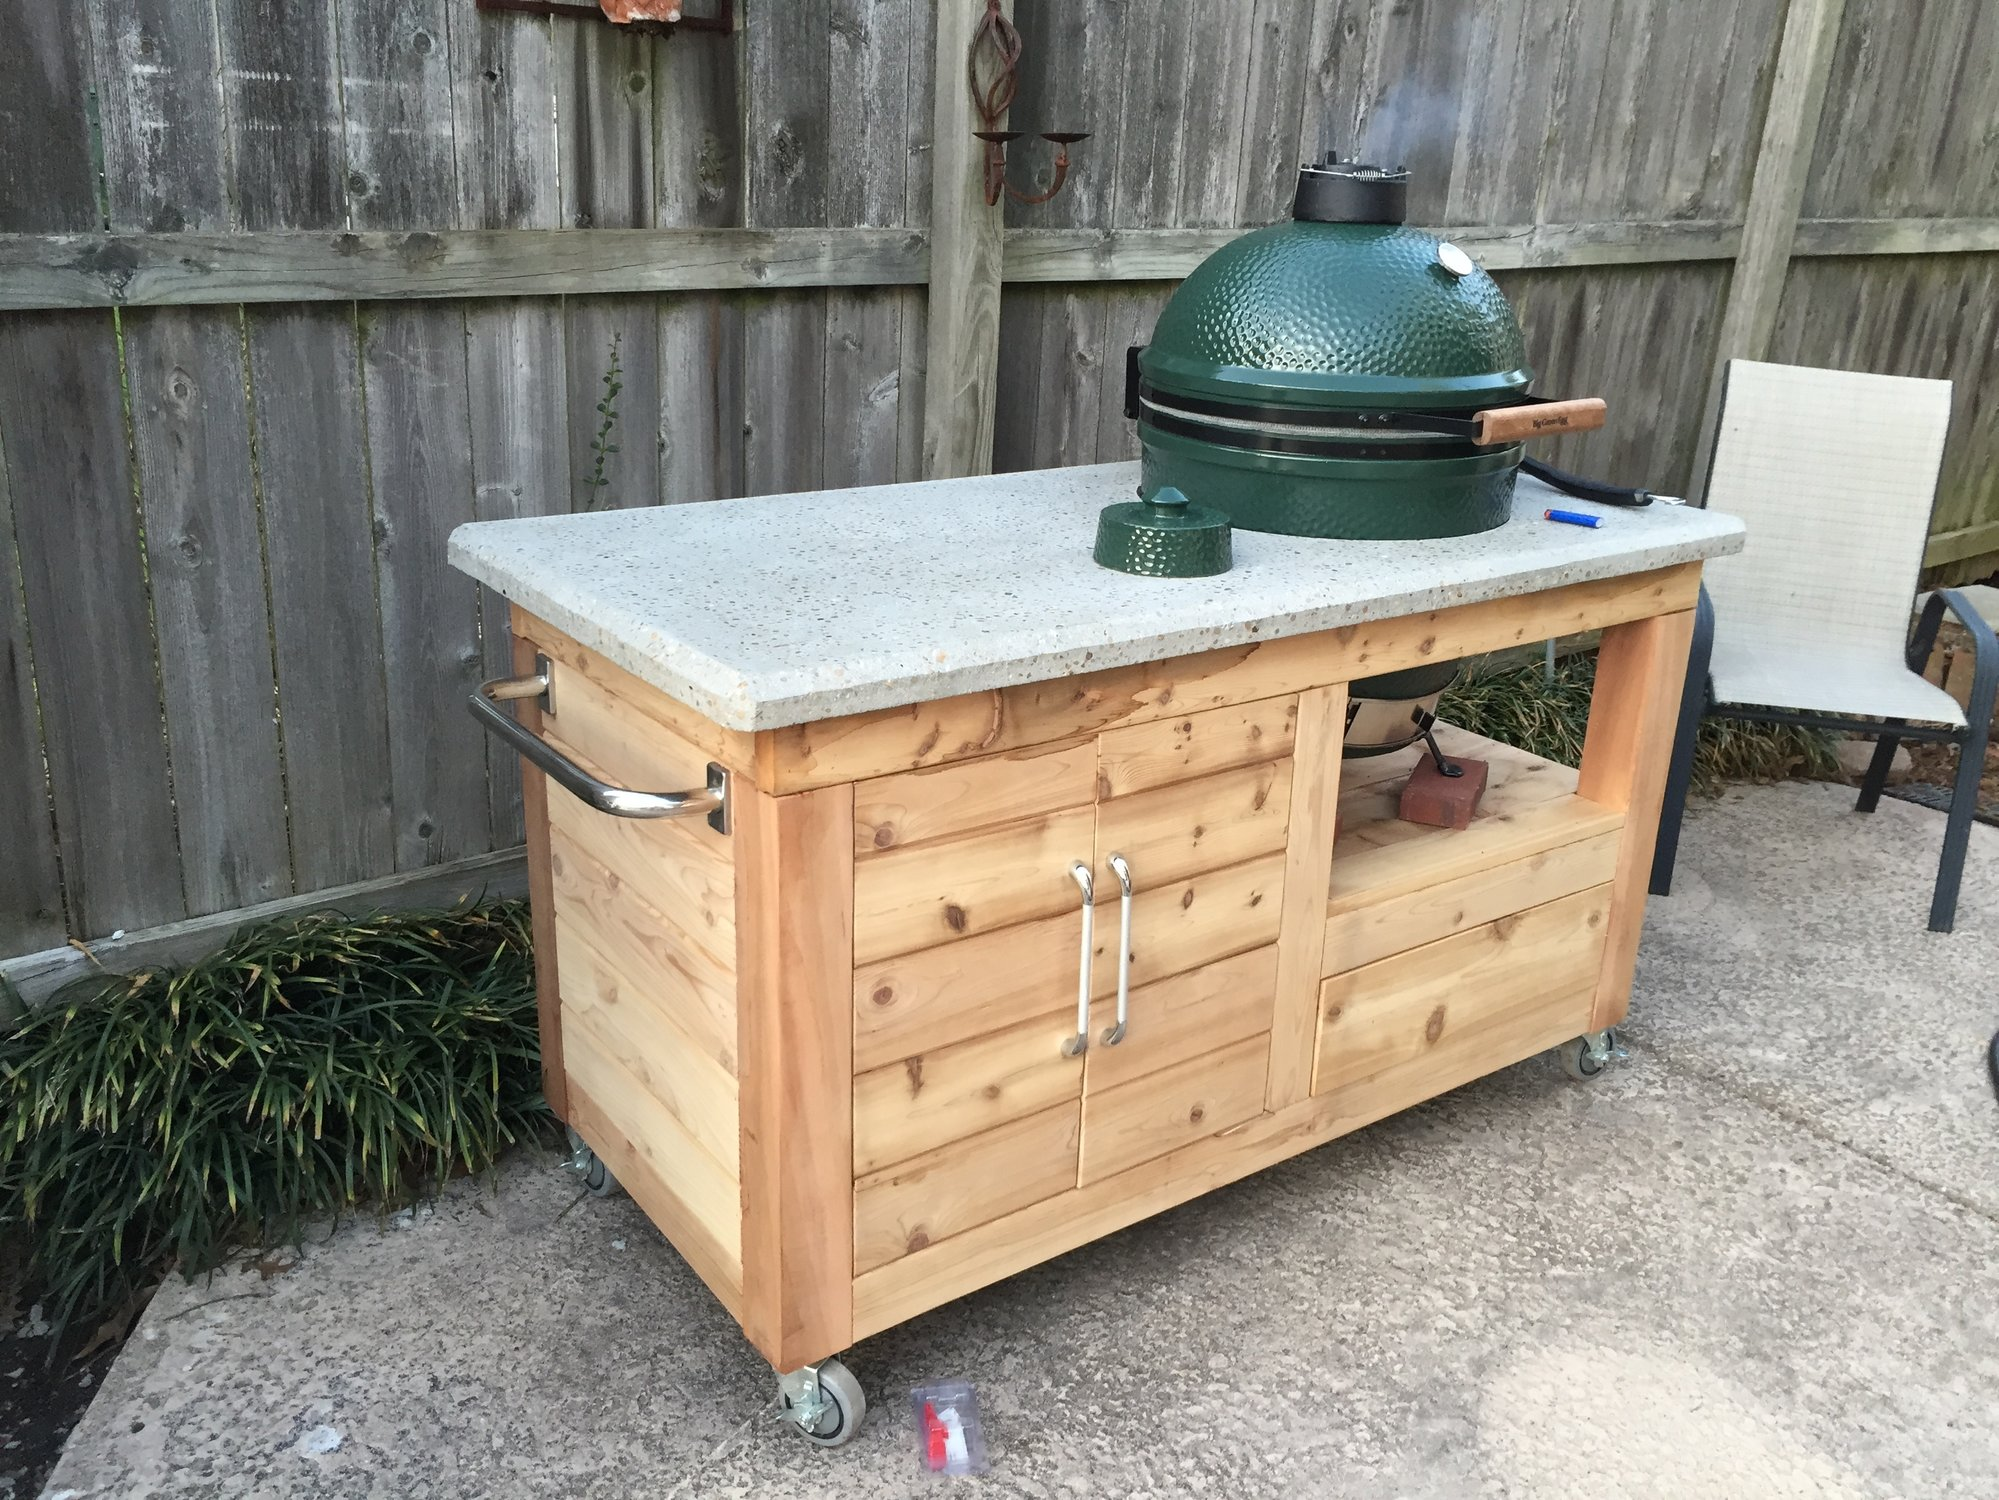 My Bge Cedar Table With Concrete Countertop Big Green Egg Egghead Forum The Ultimate Cooking Experience